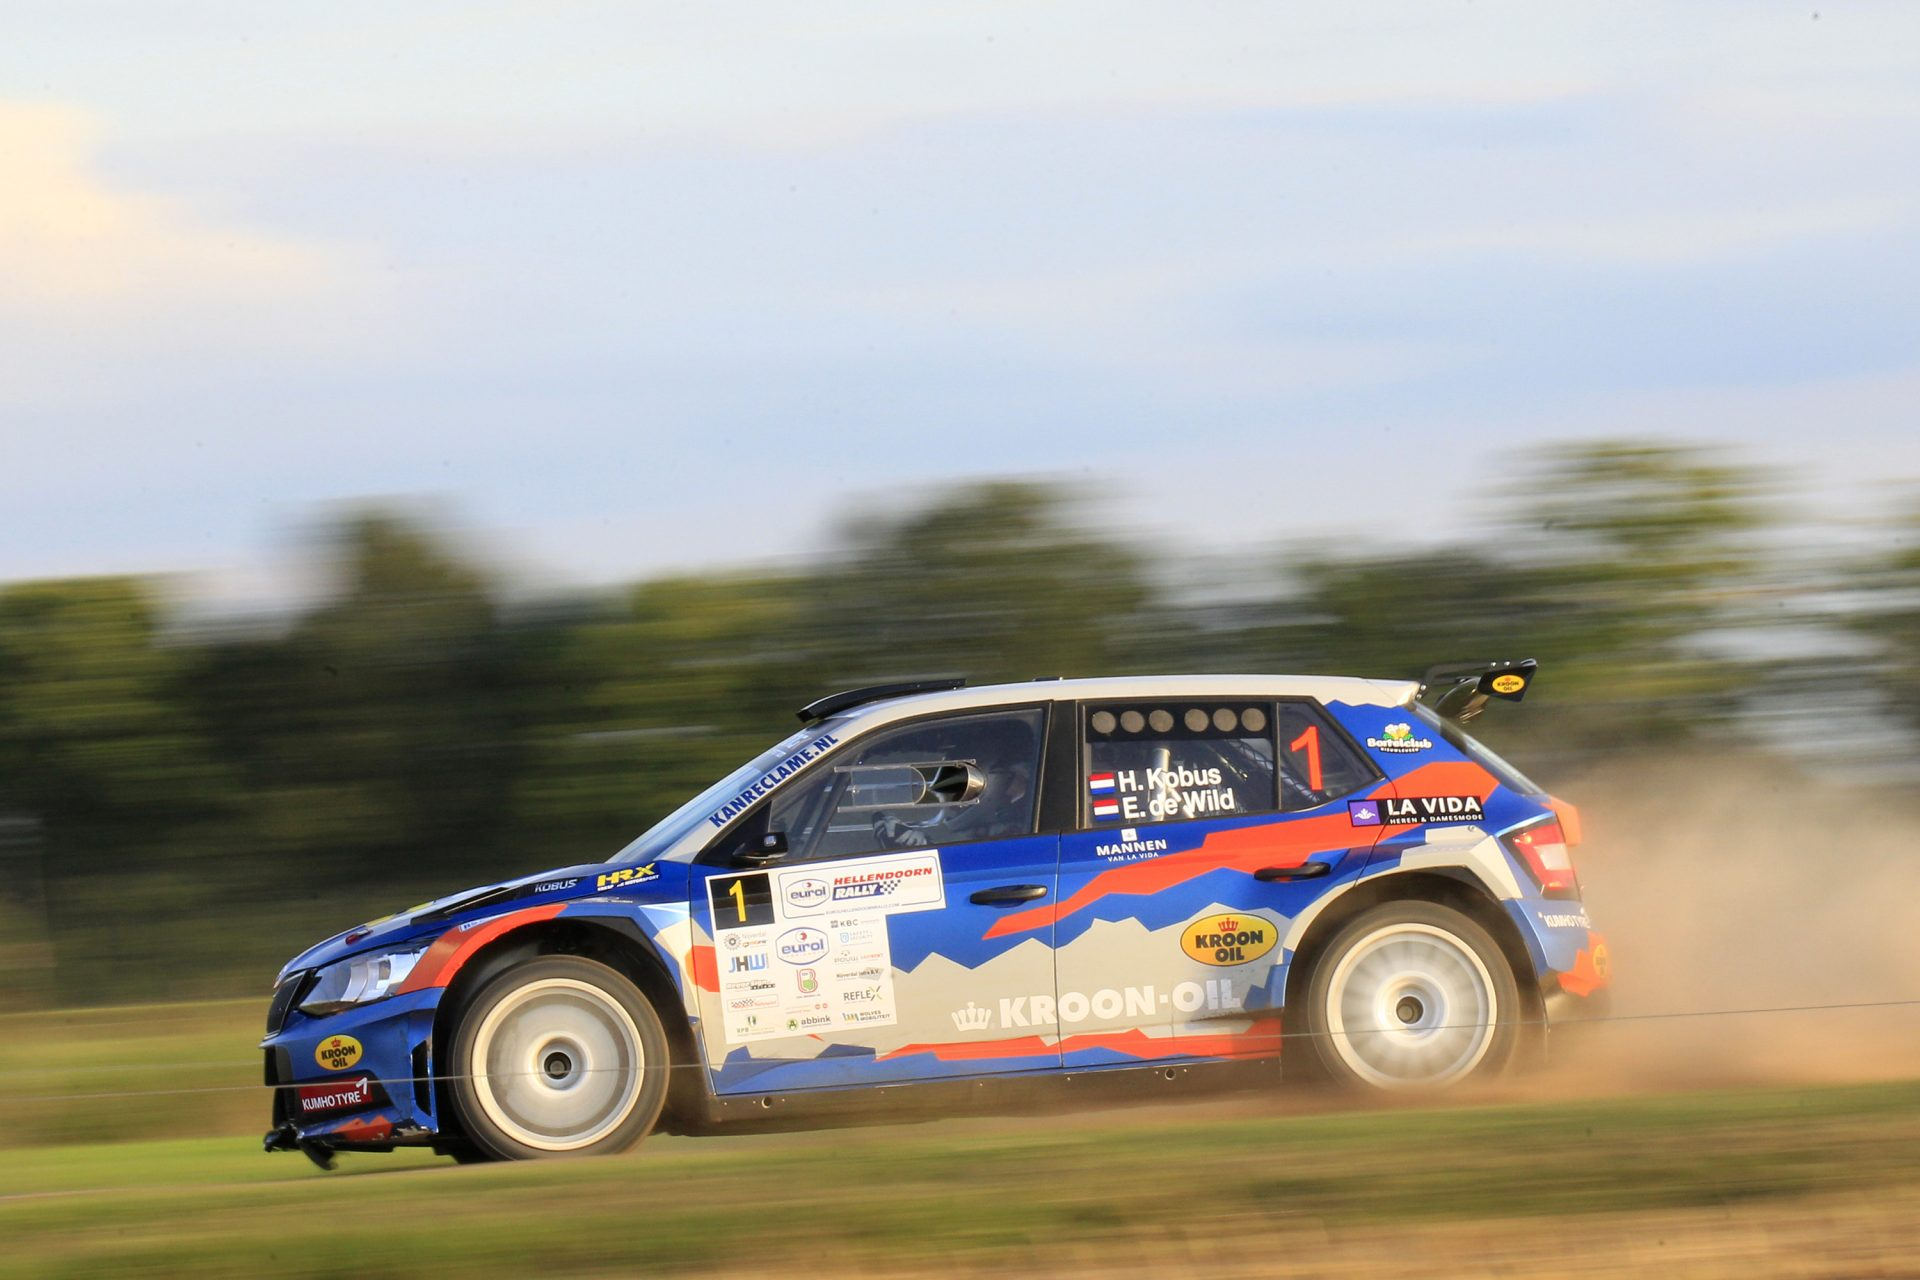 Hermen Kobus: Perfect Season with FABIA R5 and More than Dutch Title | Champs Around the World